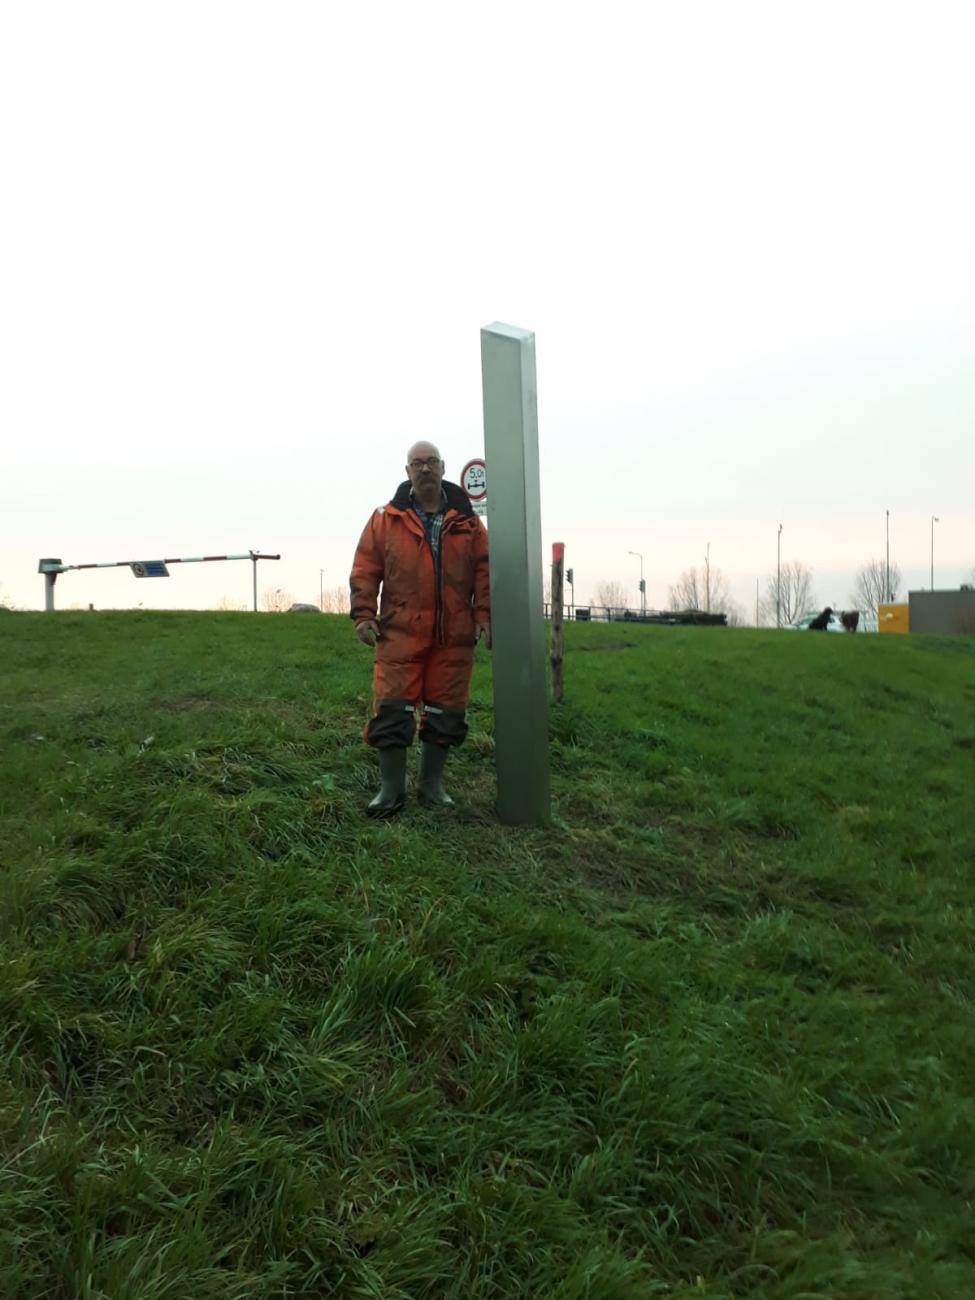 Locks worker on 9 12 next to monolith Maasbracht